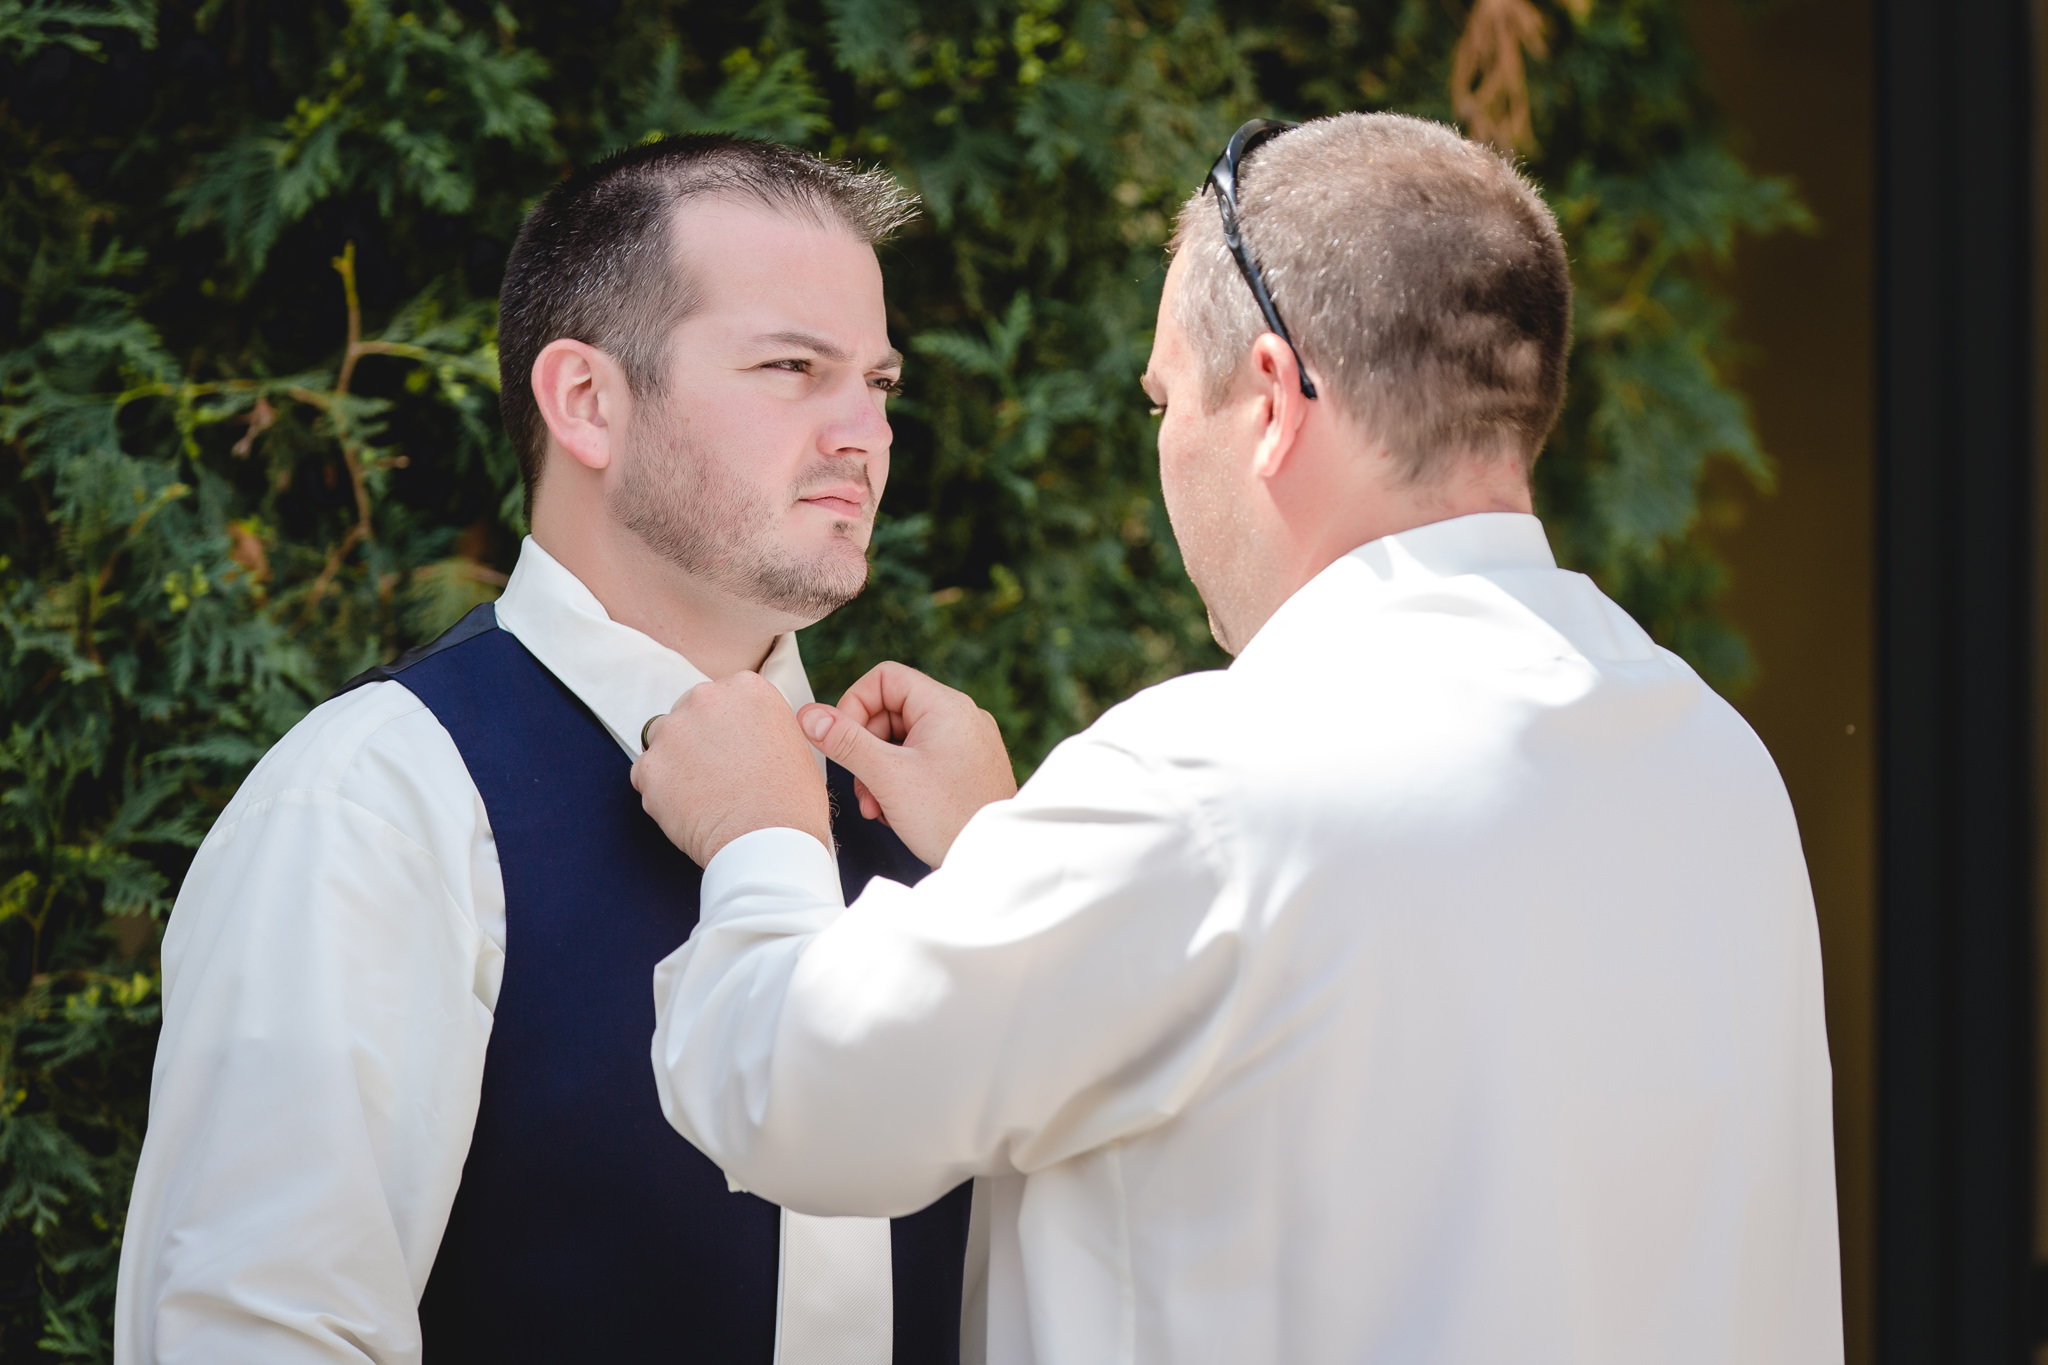 Groom's brother adjusts his tie at the Pittsburgh Airport Marriott